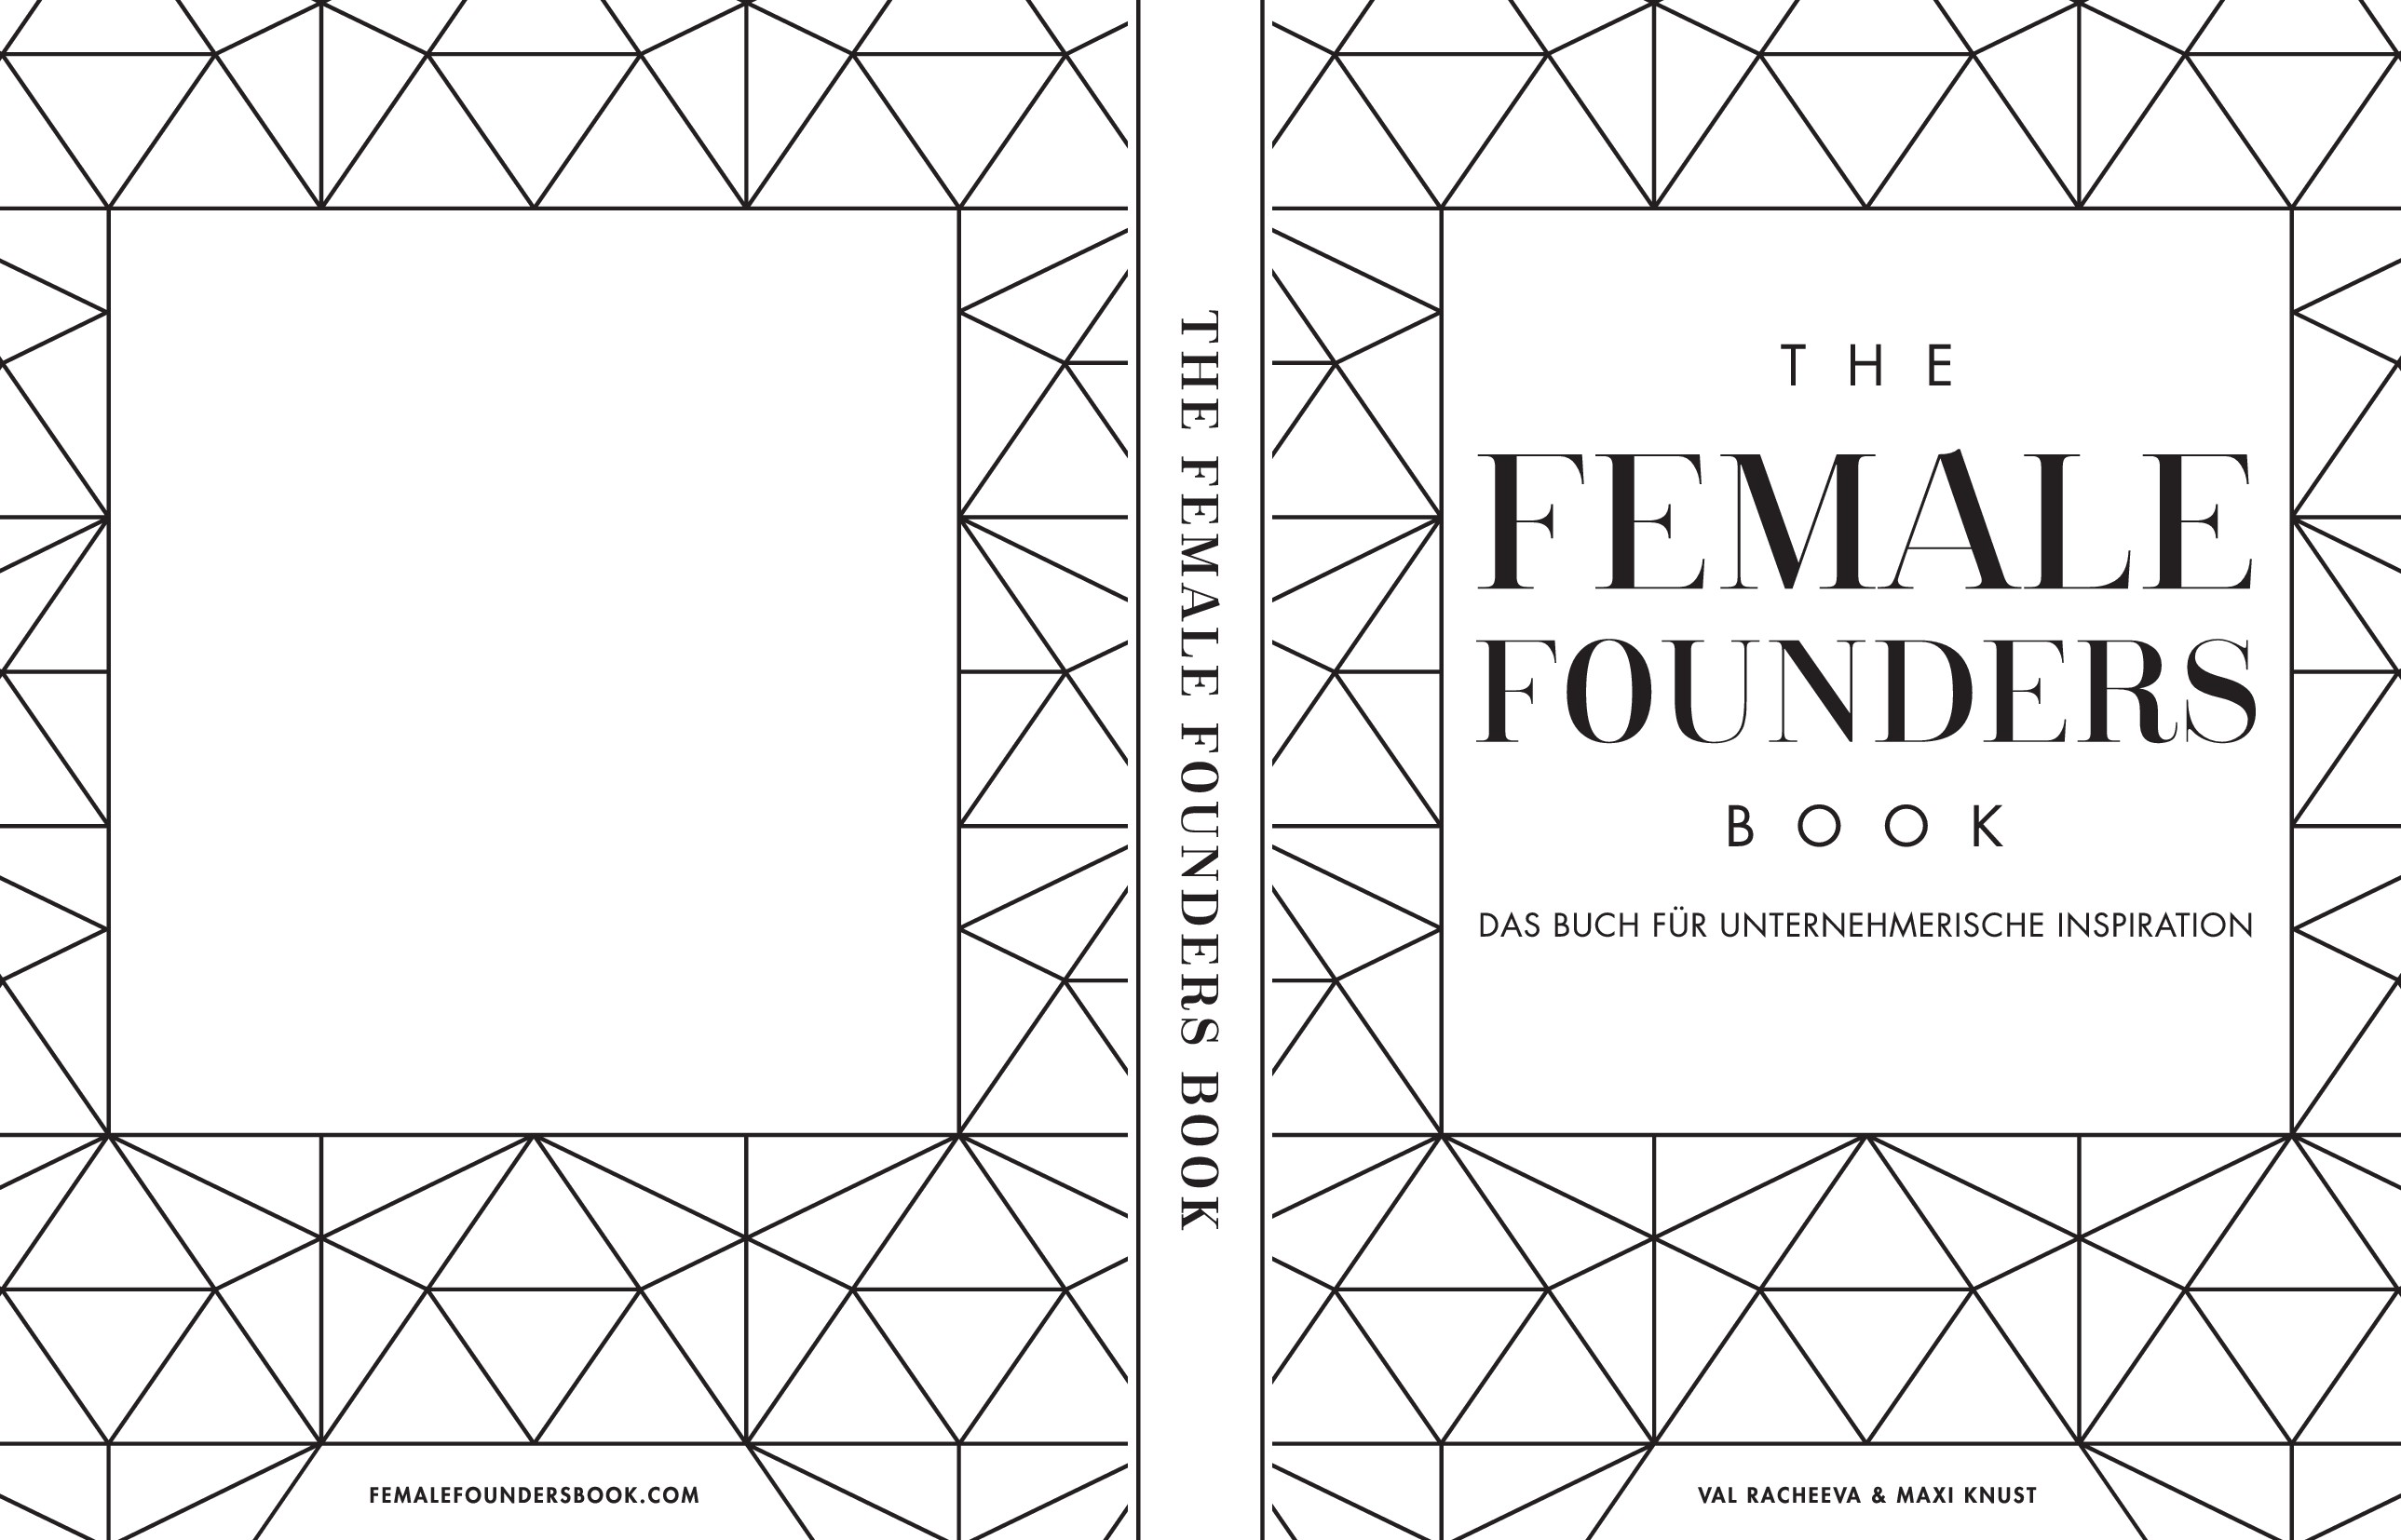 Minimal, beautiful & modern book cover design needed for the Female Founders Book